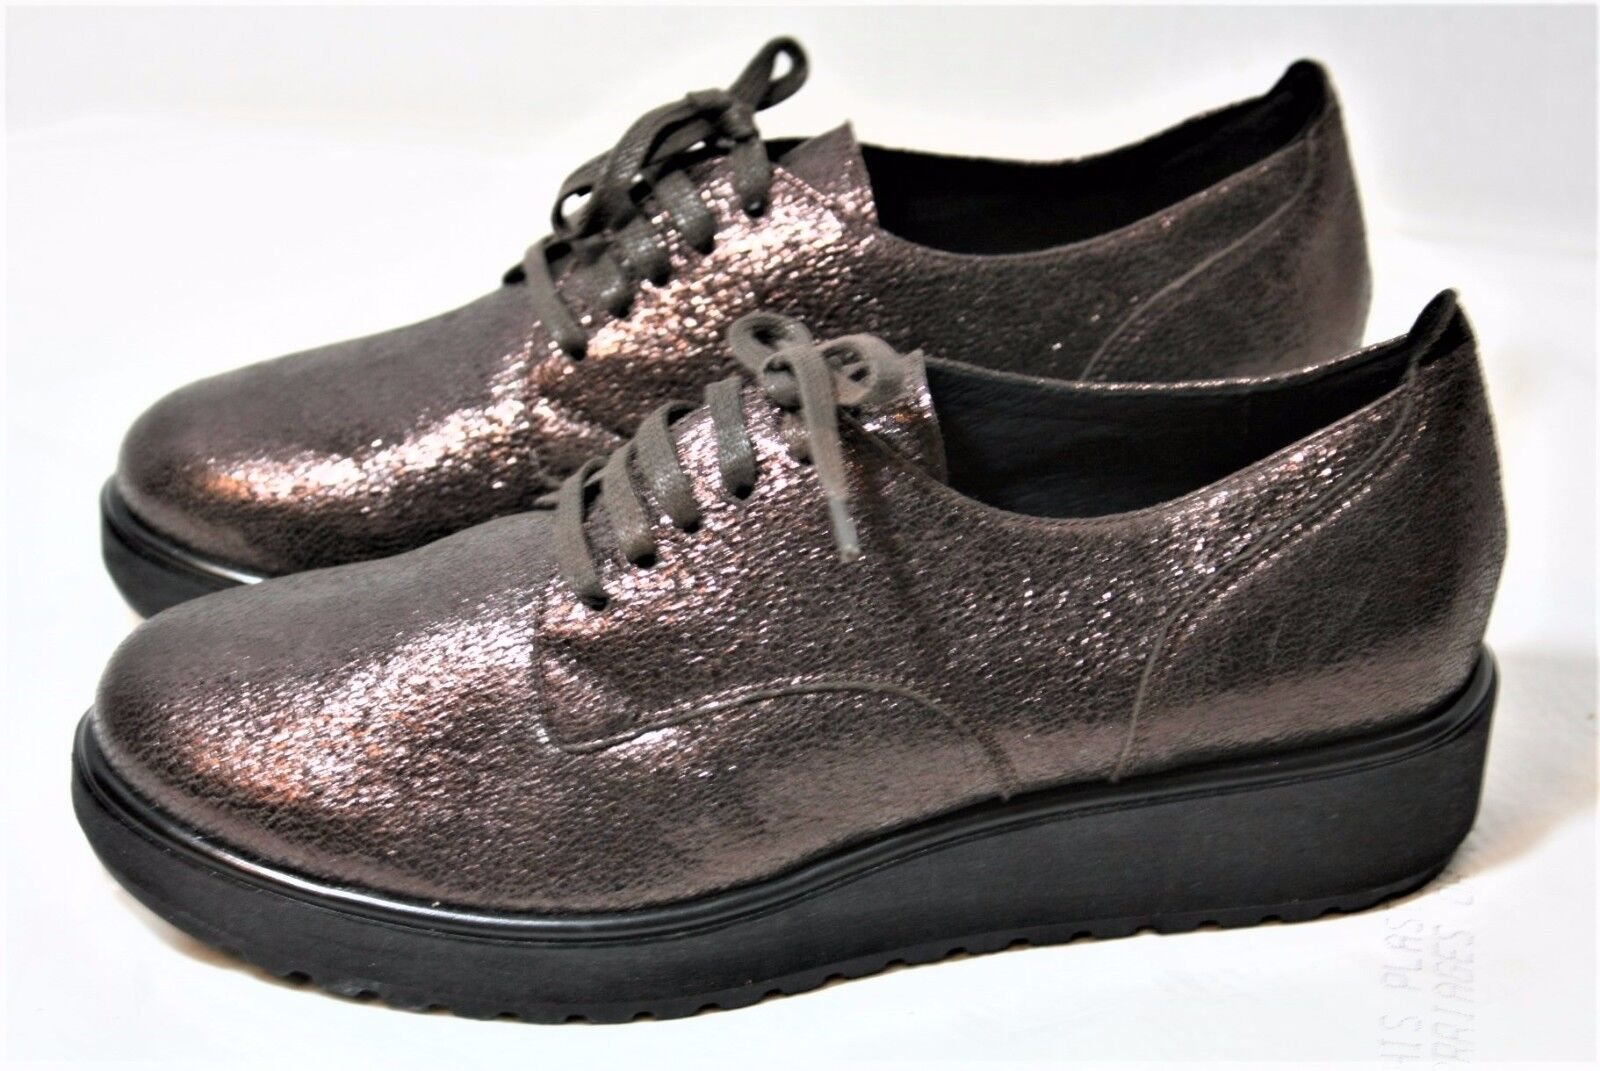 ILSE JACOBSEN Chaussures CRACKLED METALLIC LEATHER LACE UP WEDGE SNEAKER OXFORD NEW 7